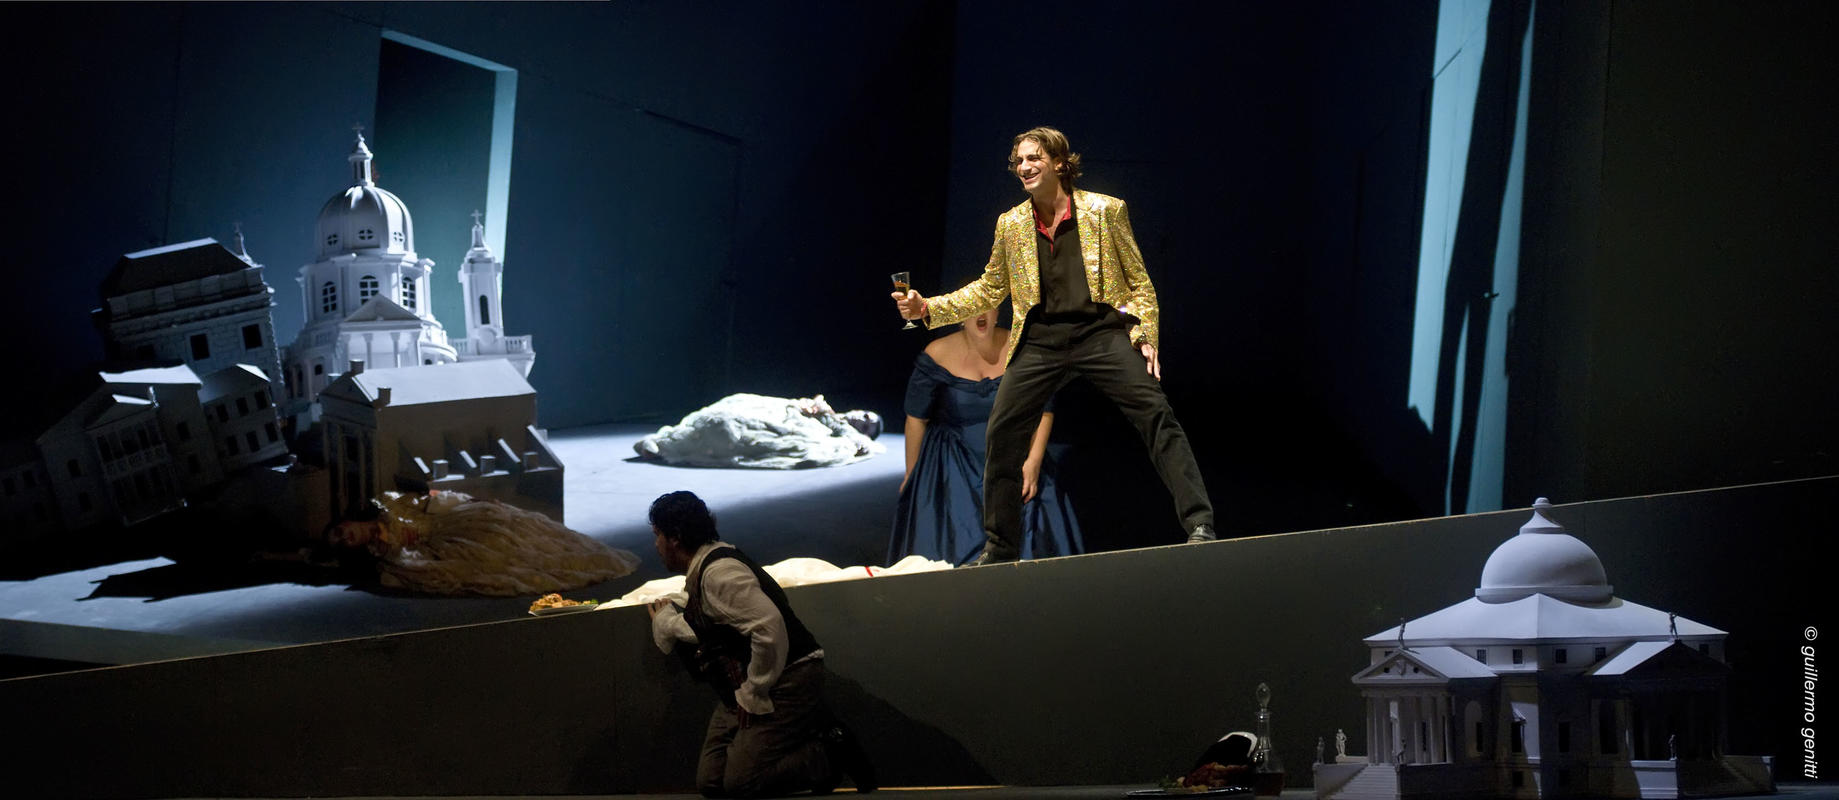 Photograph from Don Giovanni - lighting design by Manuel Garrido Freire